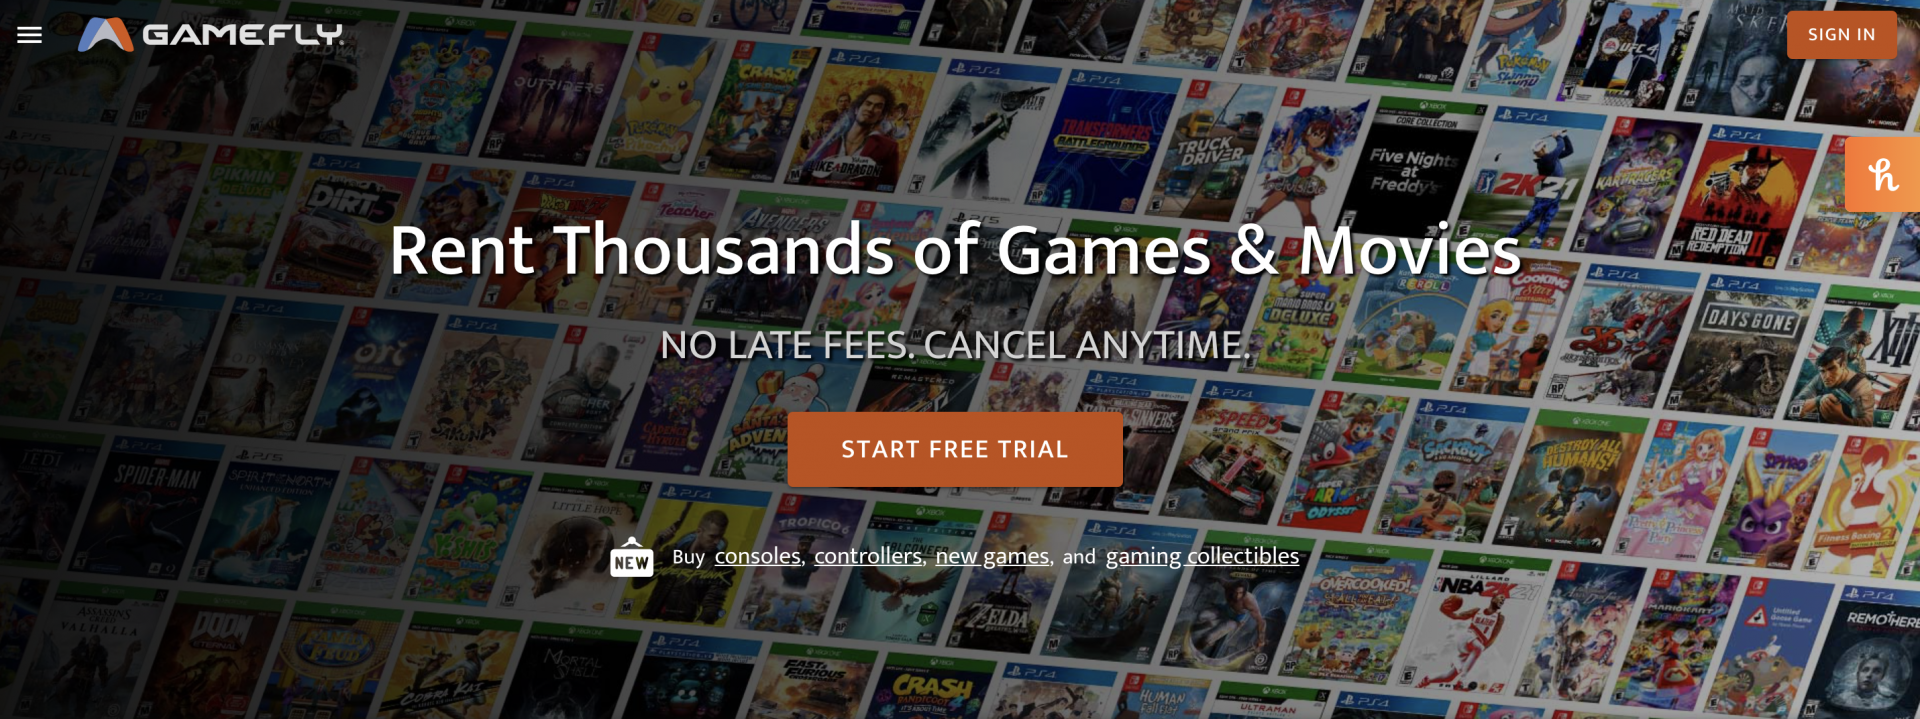 GameFly: Are Game Rentals Via Snail Mail Still Worth It Today? - How does GameFly work?